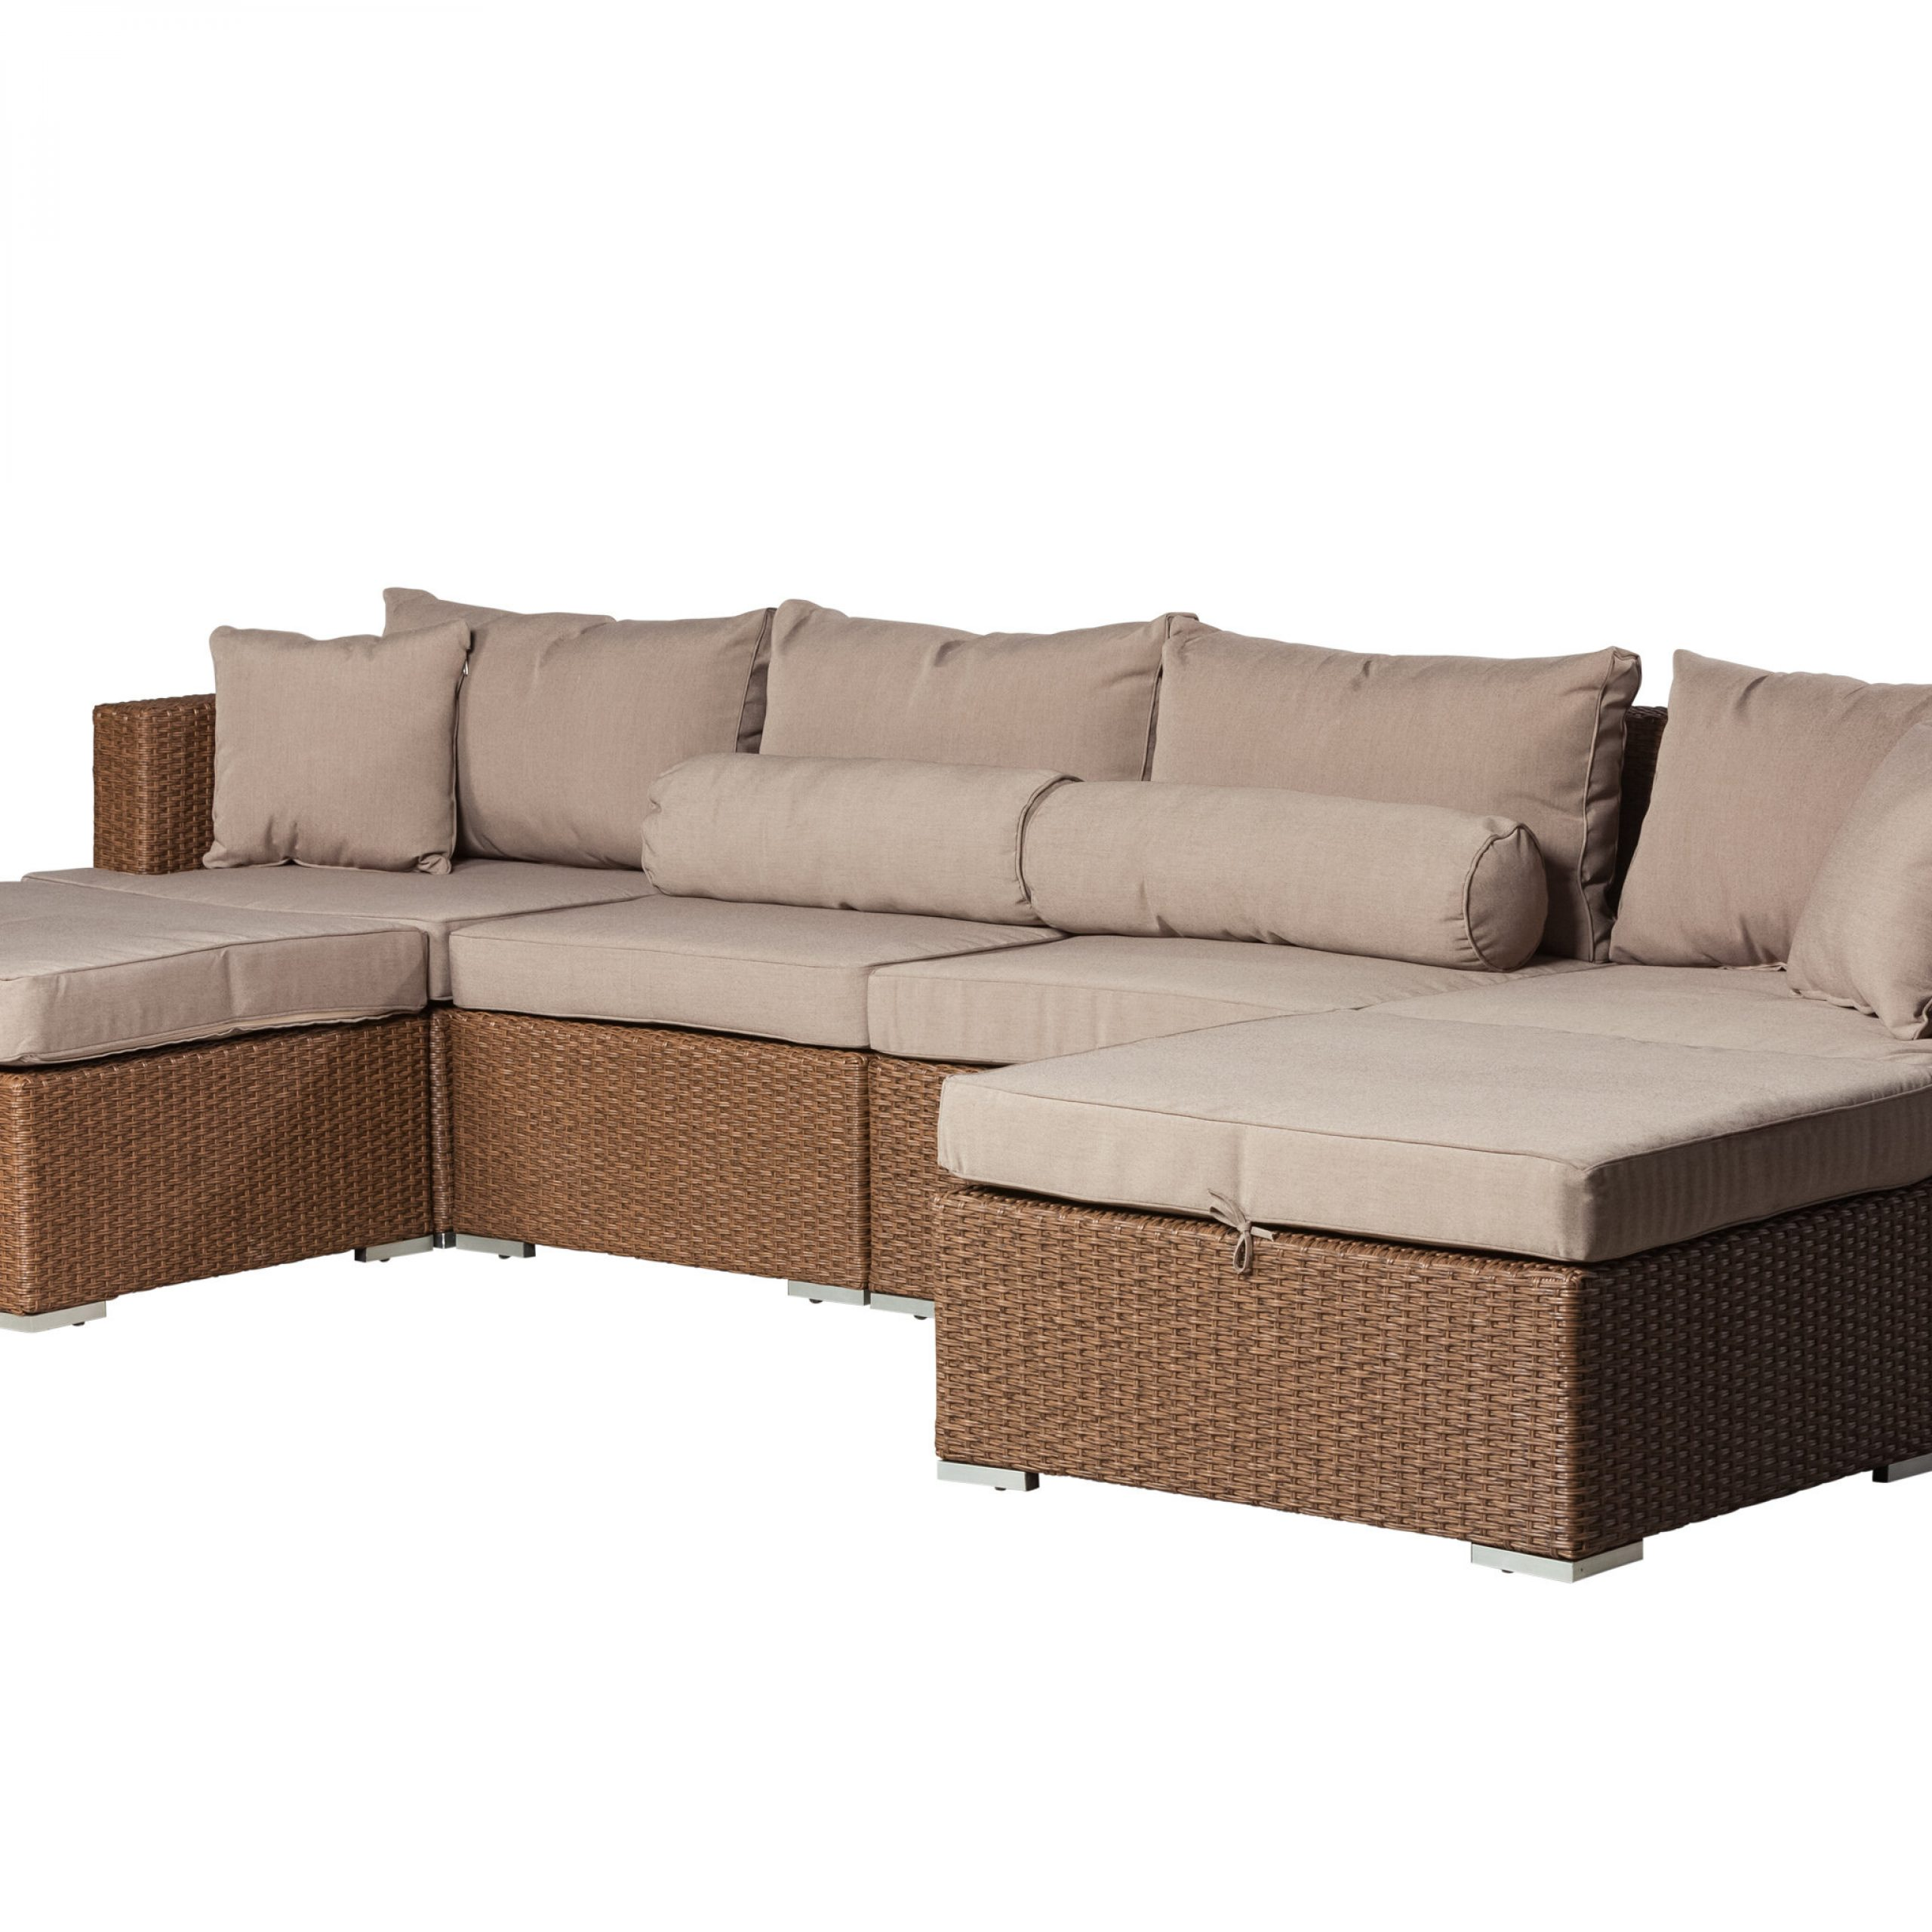 Well Known Letona Patio Sectionals With Cushions Intended For Patiosense Teagarden Patio Sectional With Cushions & Reviews (View 7 of 25)